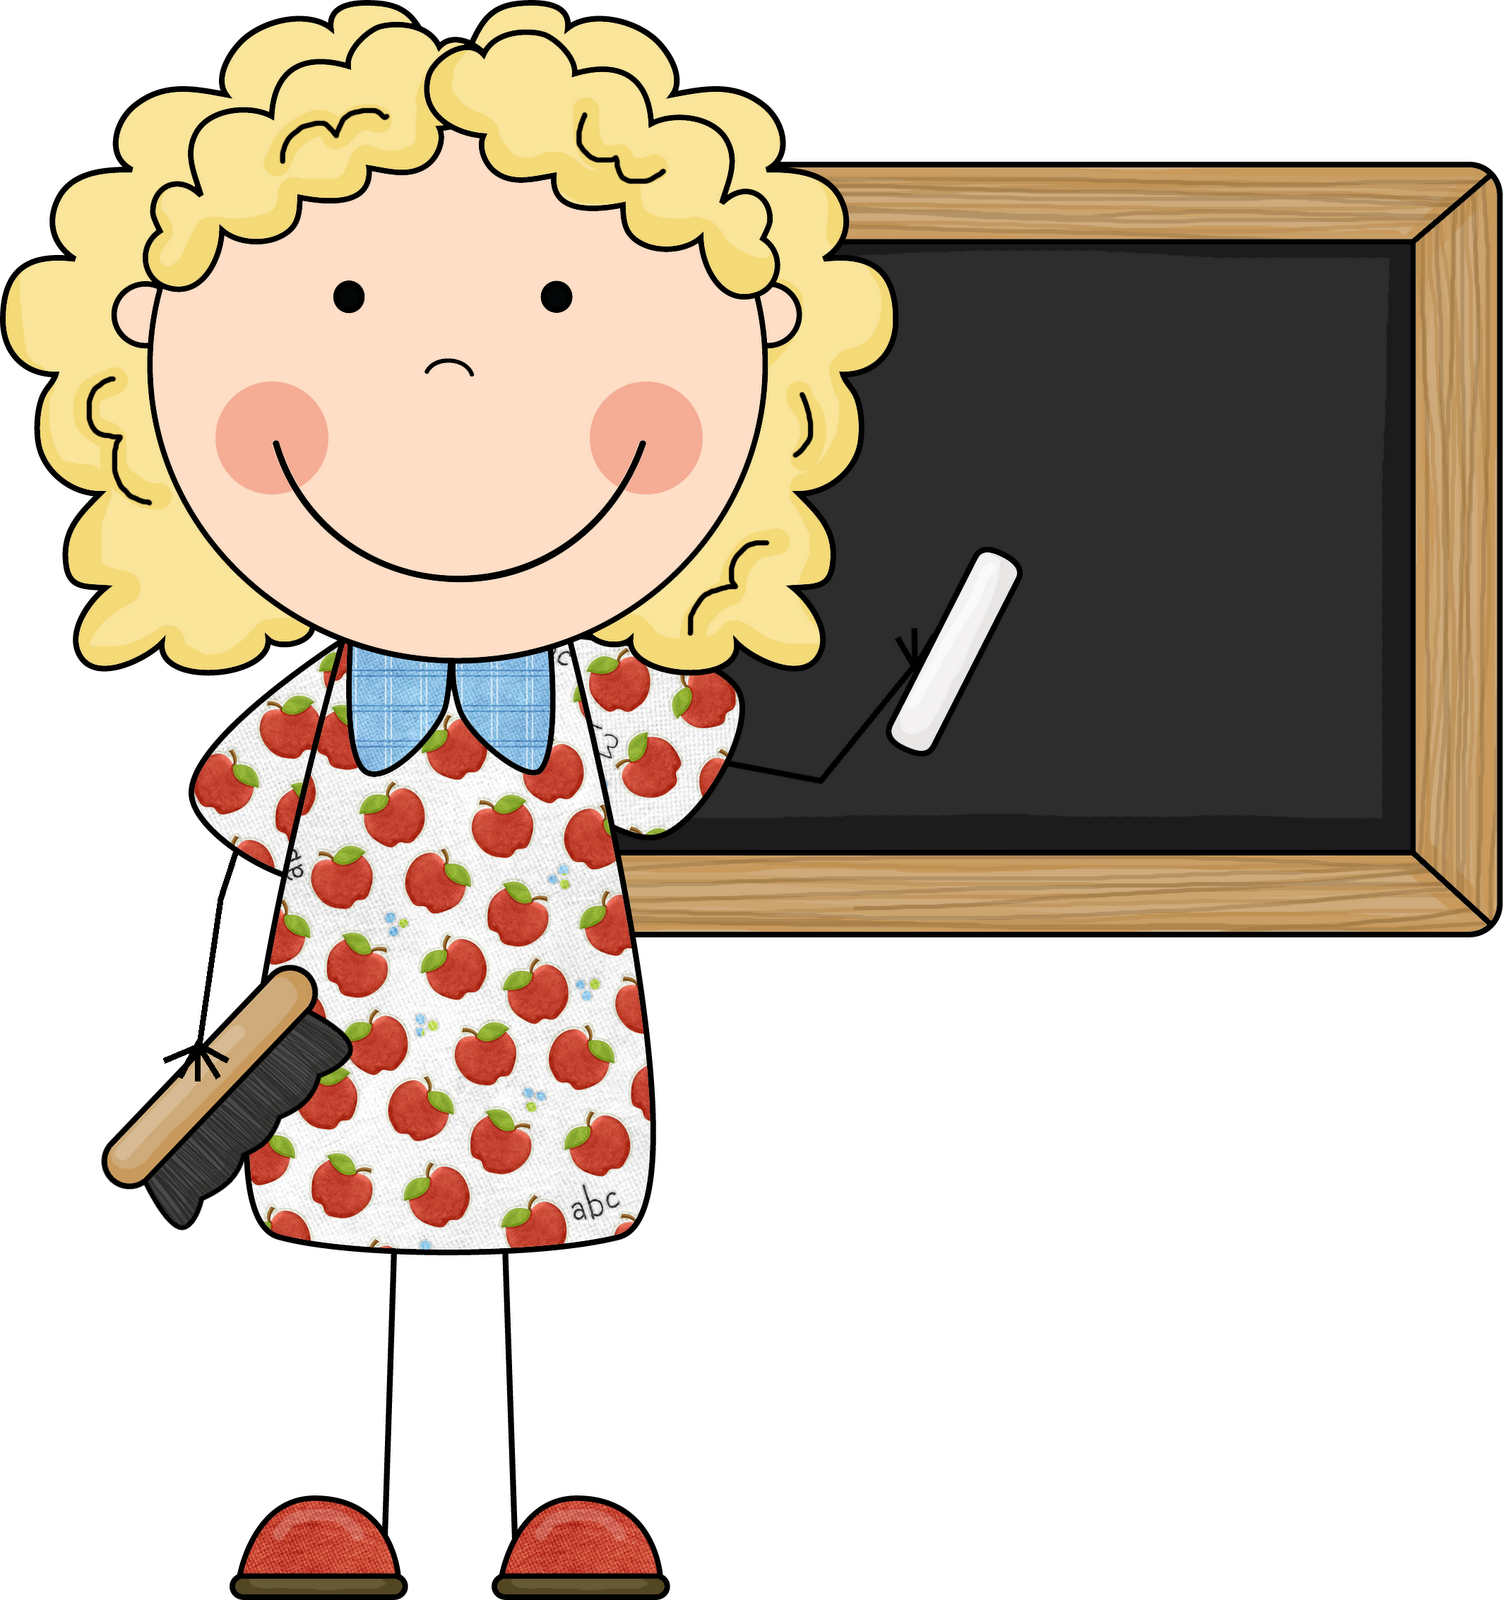 free download Teaching clipart images. Bulletin board